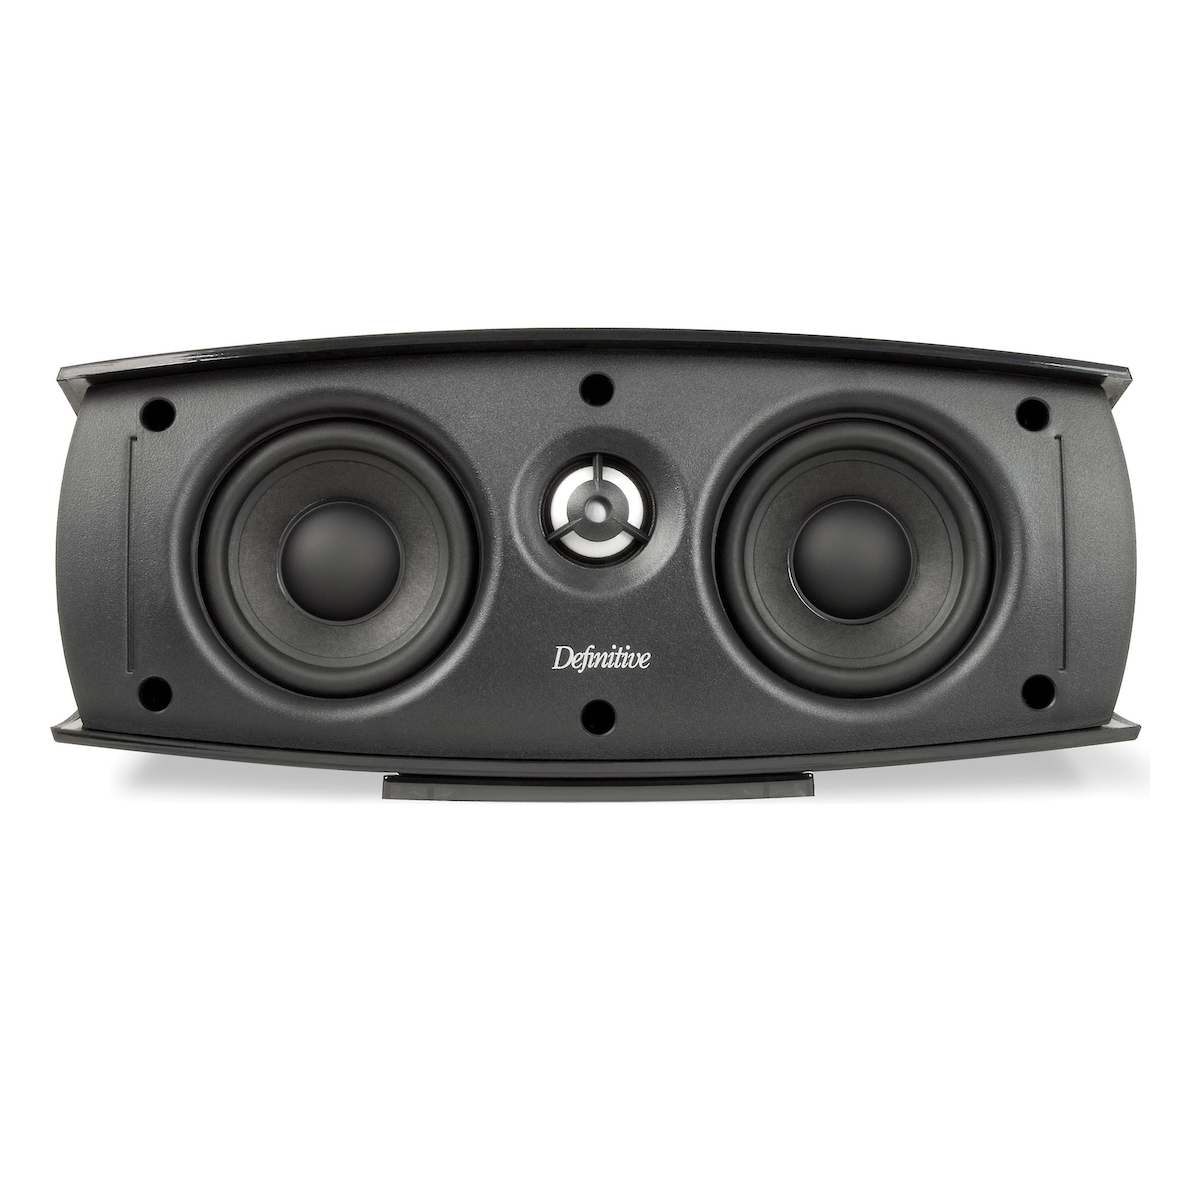 Definitive Technology ProCinema 400 - 5.1 Channel Speaker System, Definitive Technology, 5.1 Speaker Package - AVStore.in